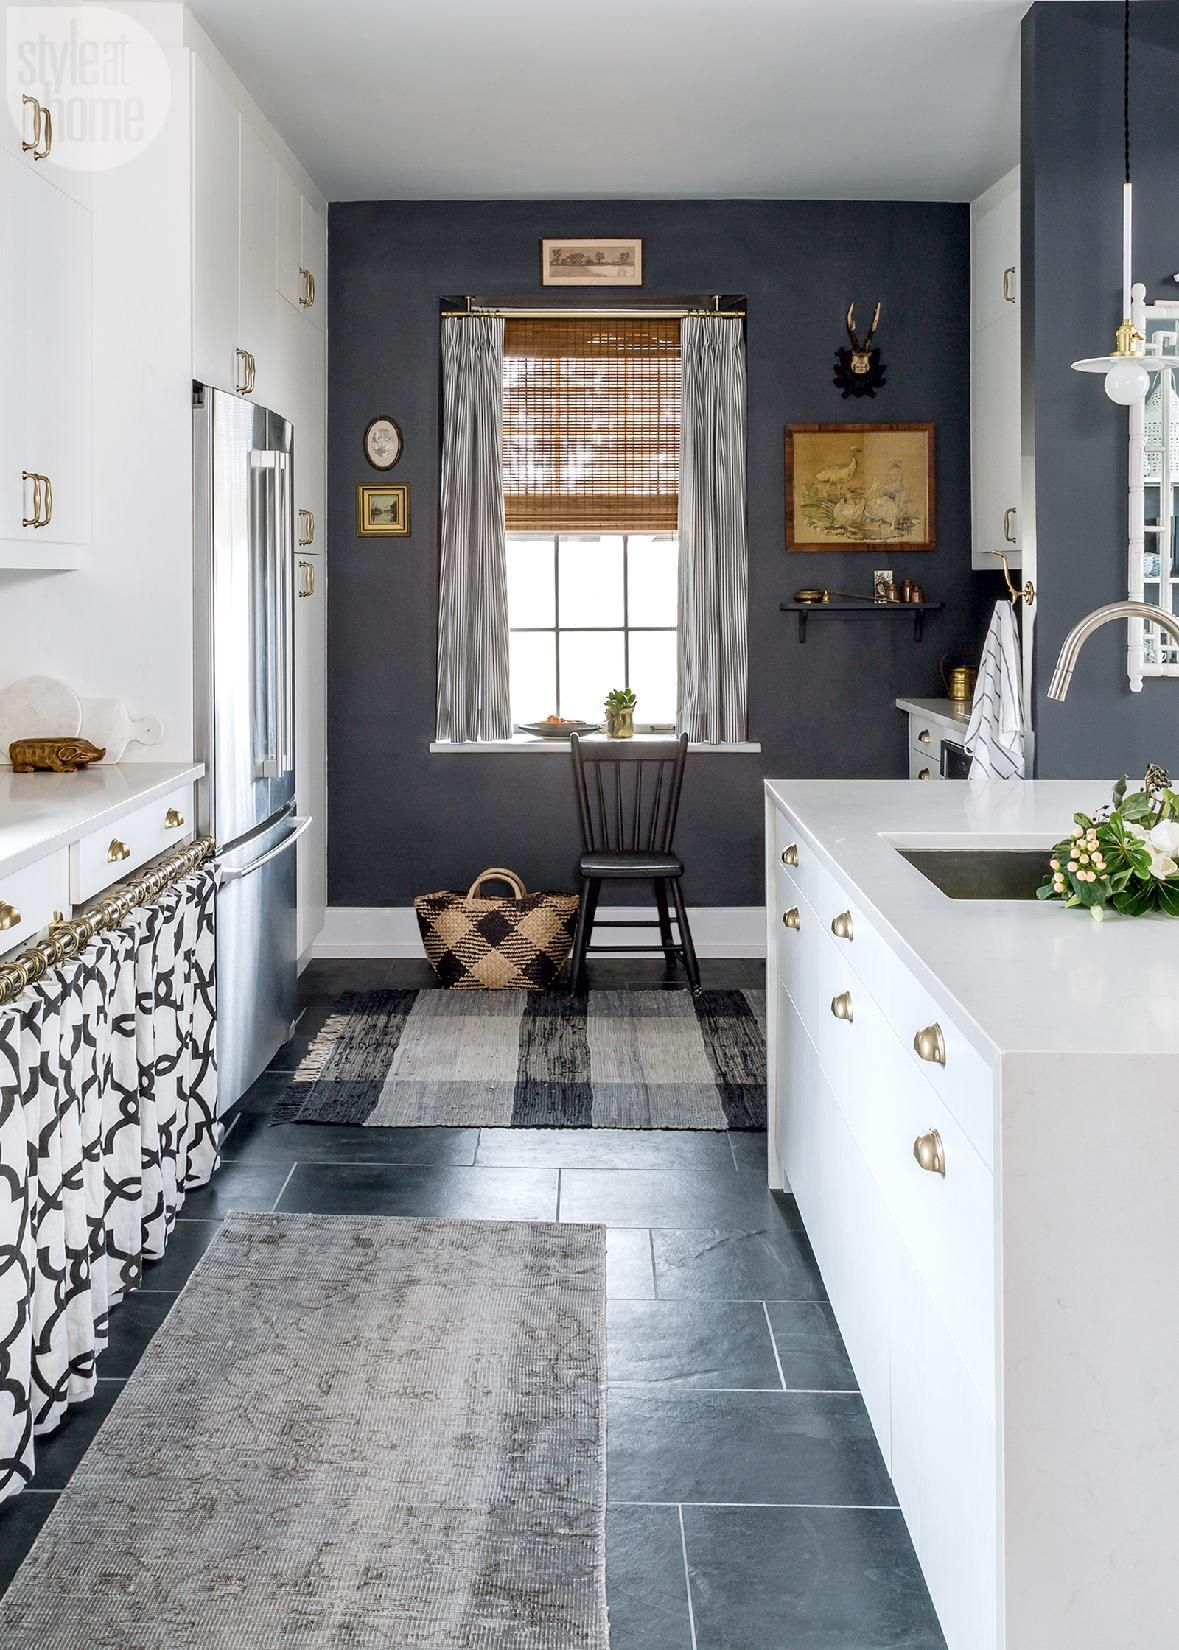 A Bespoke Kitchen Remodel With Nordic Country Flair Kitchen Design Kitchen Remodel Bespoke